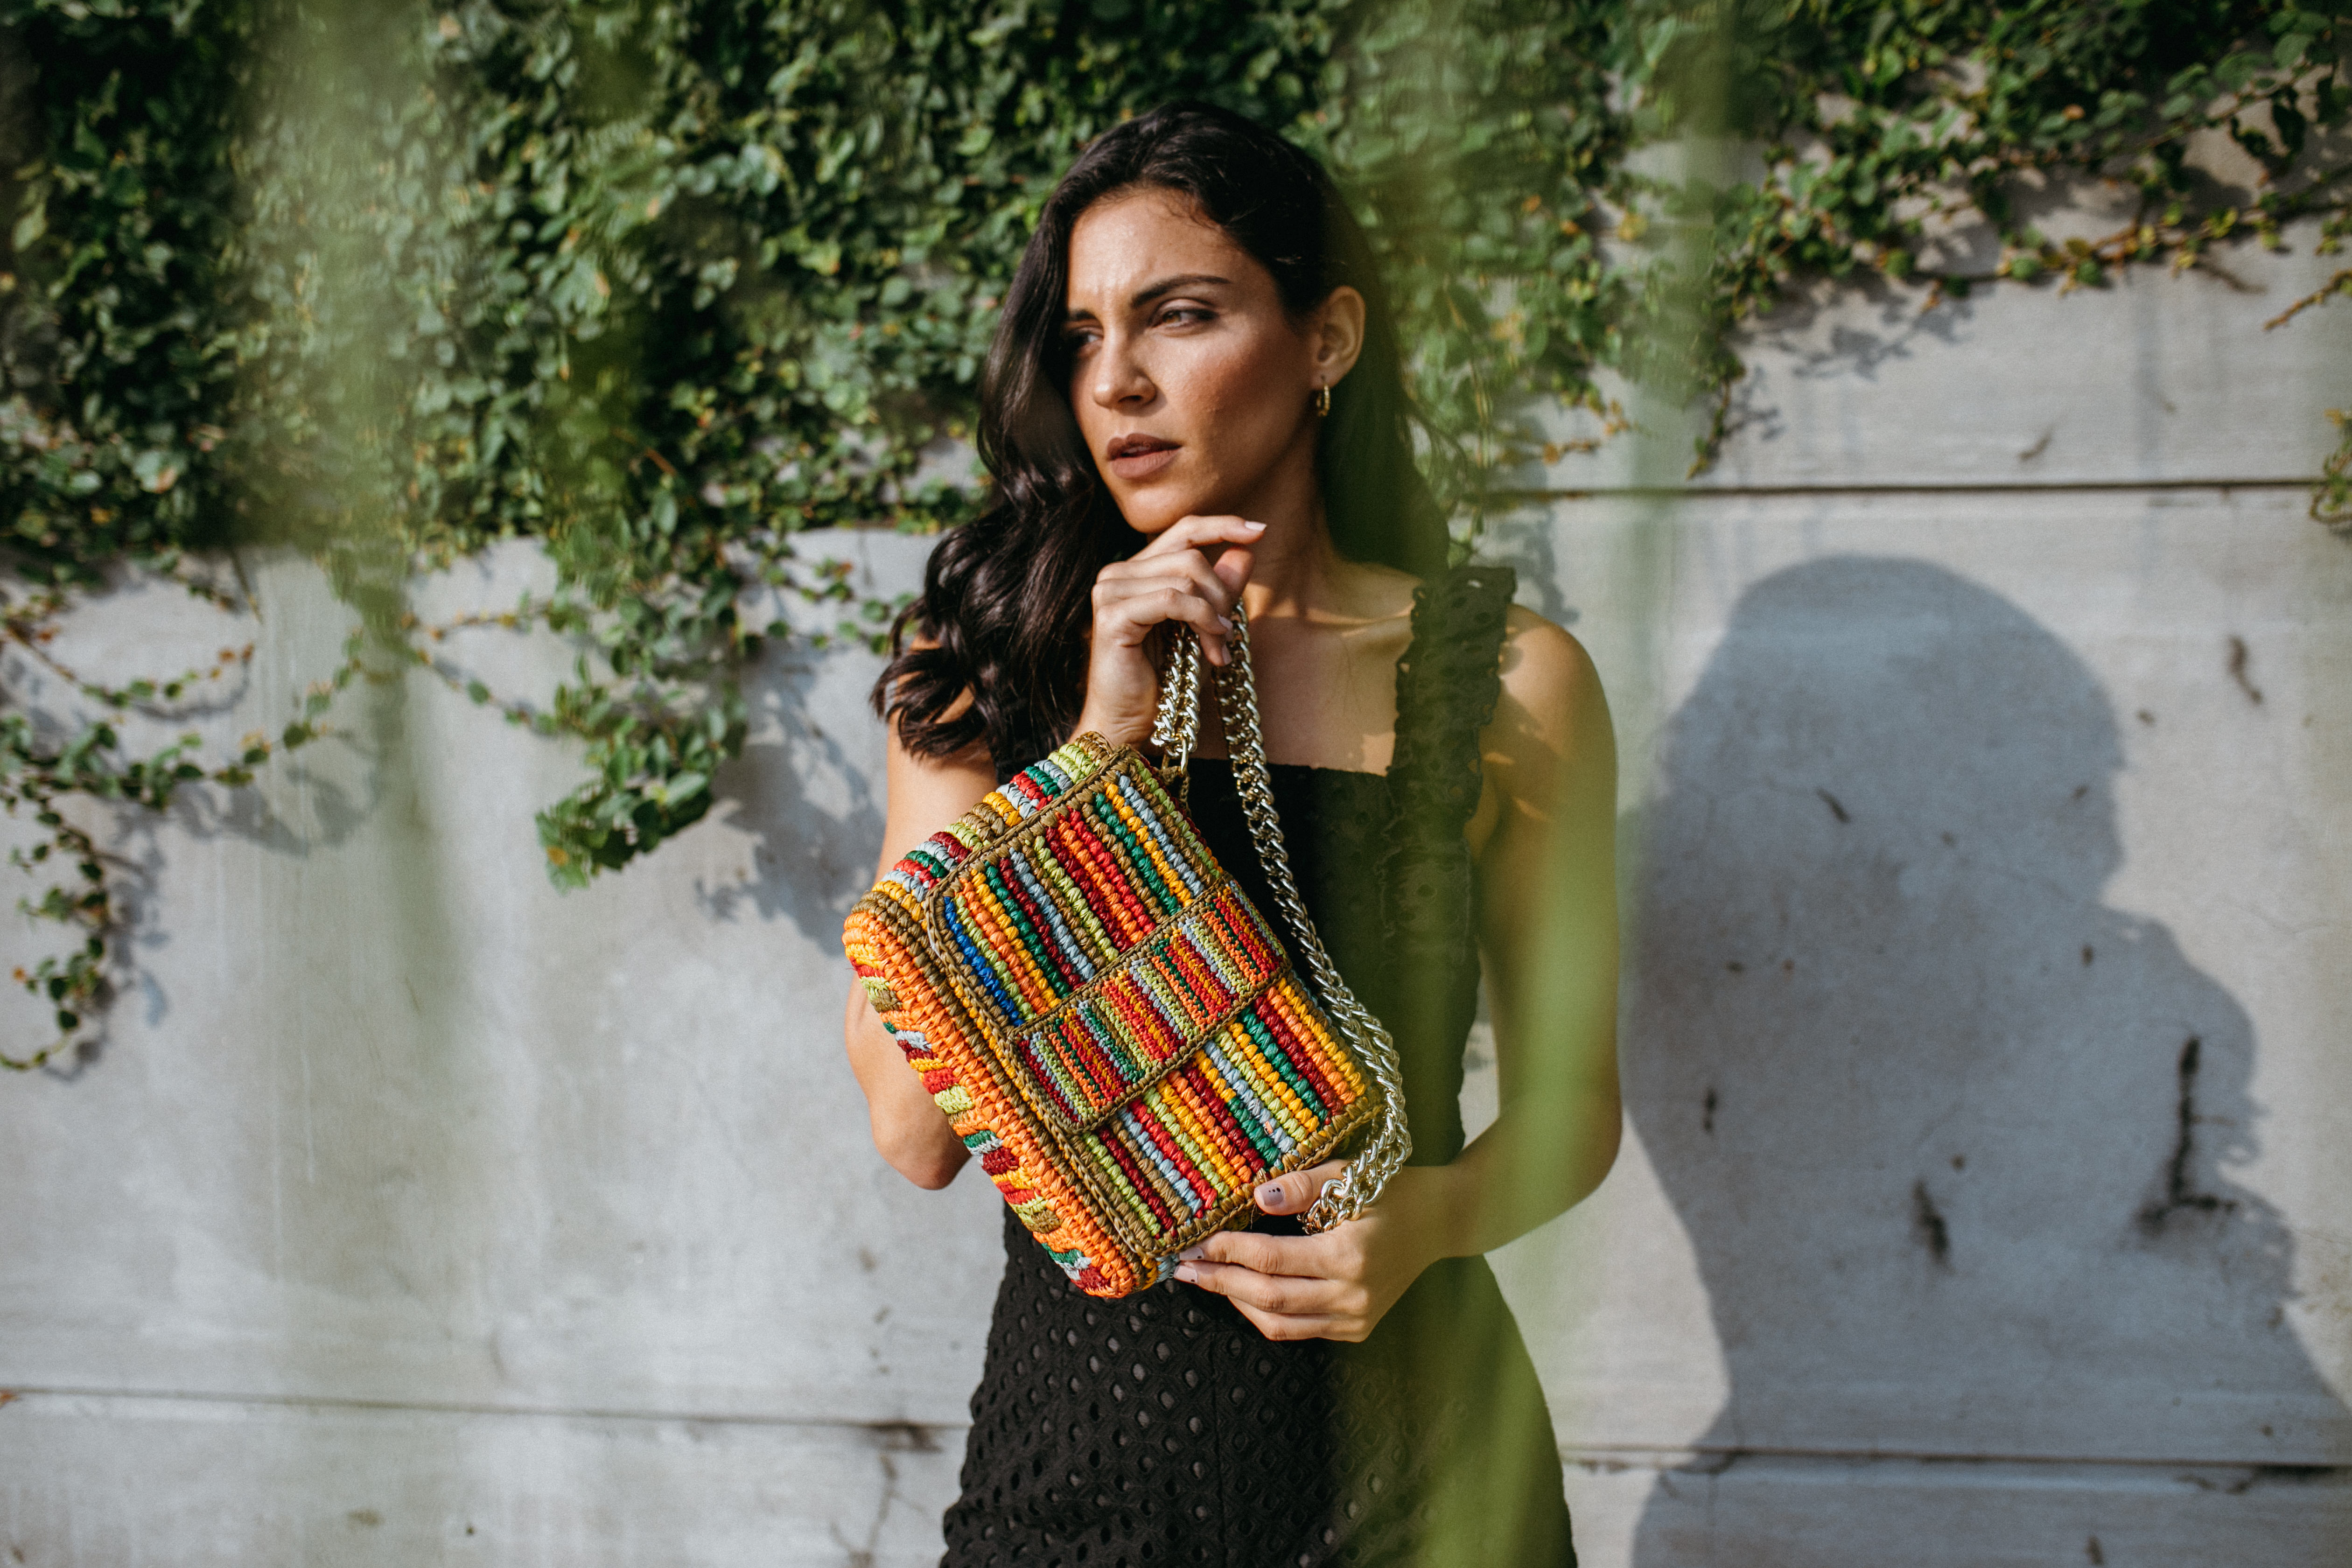 Toquilla straw bag hand-made by artisan women and dyed with natural pigments. This piece represents the diversity and multiculturality of our world.